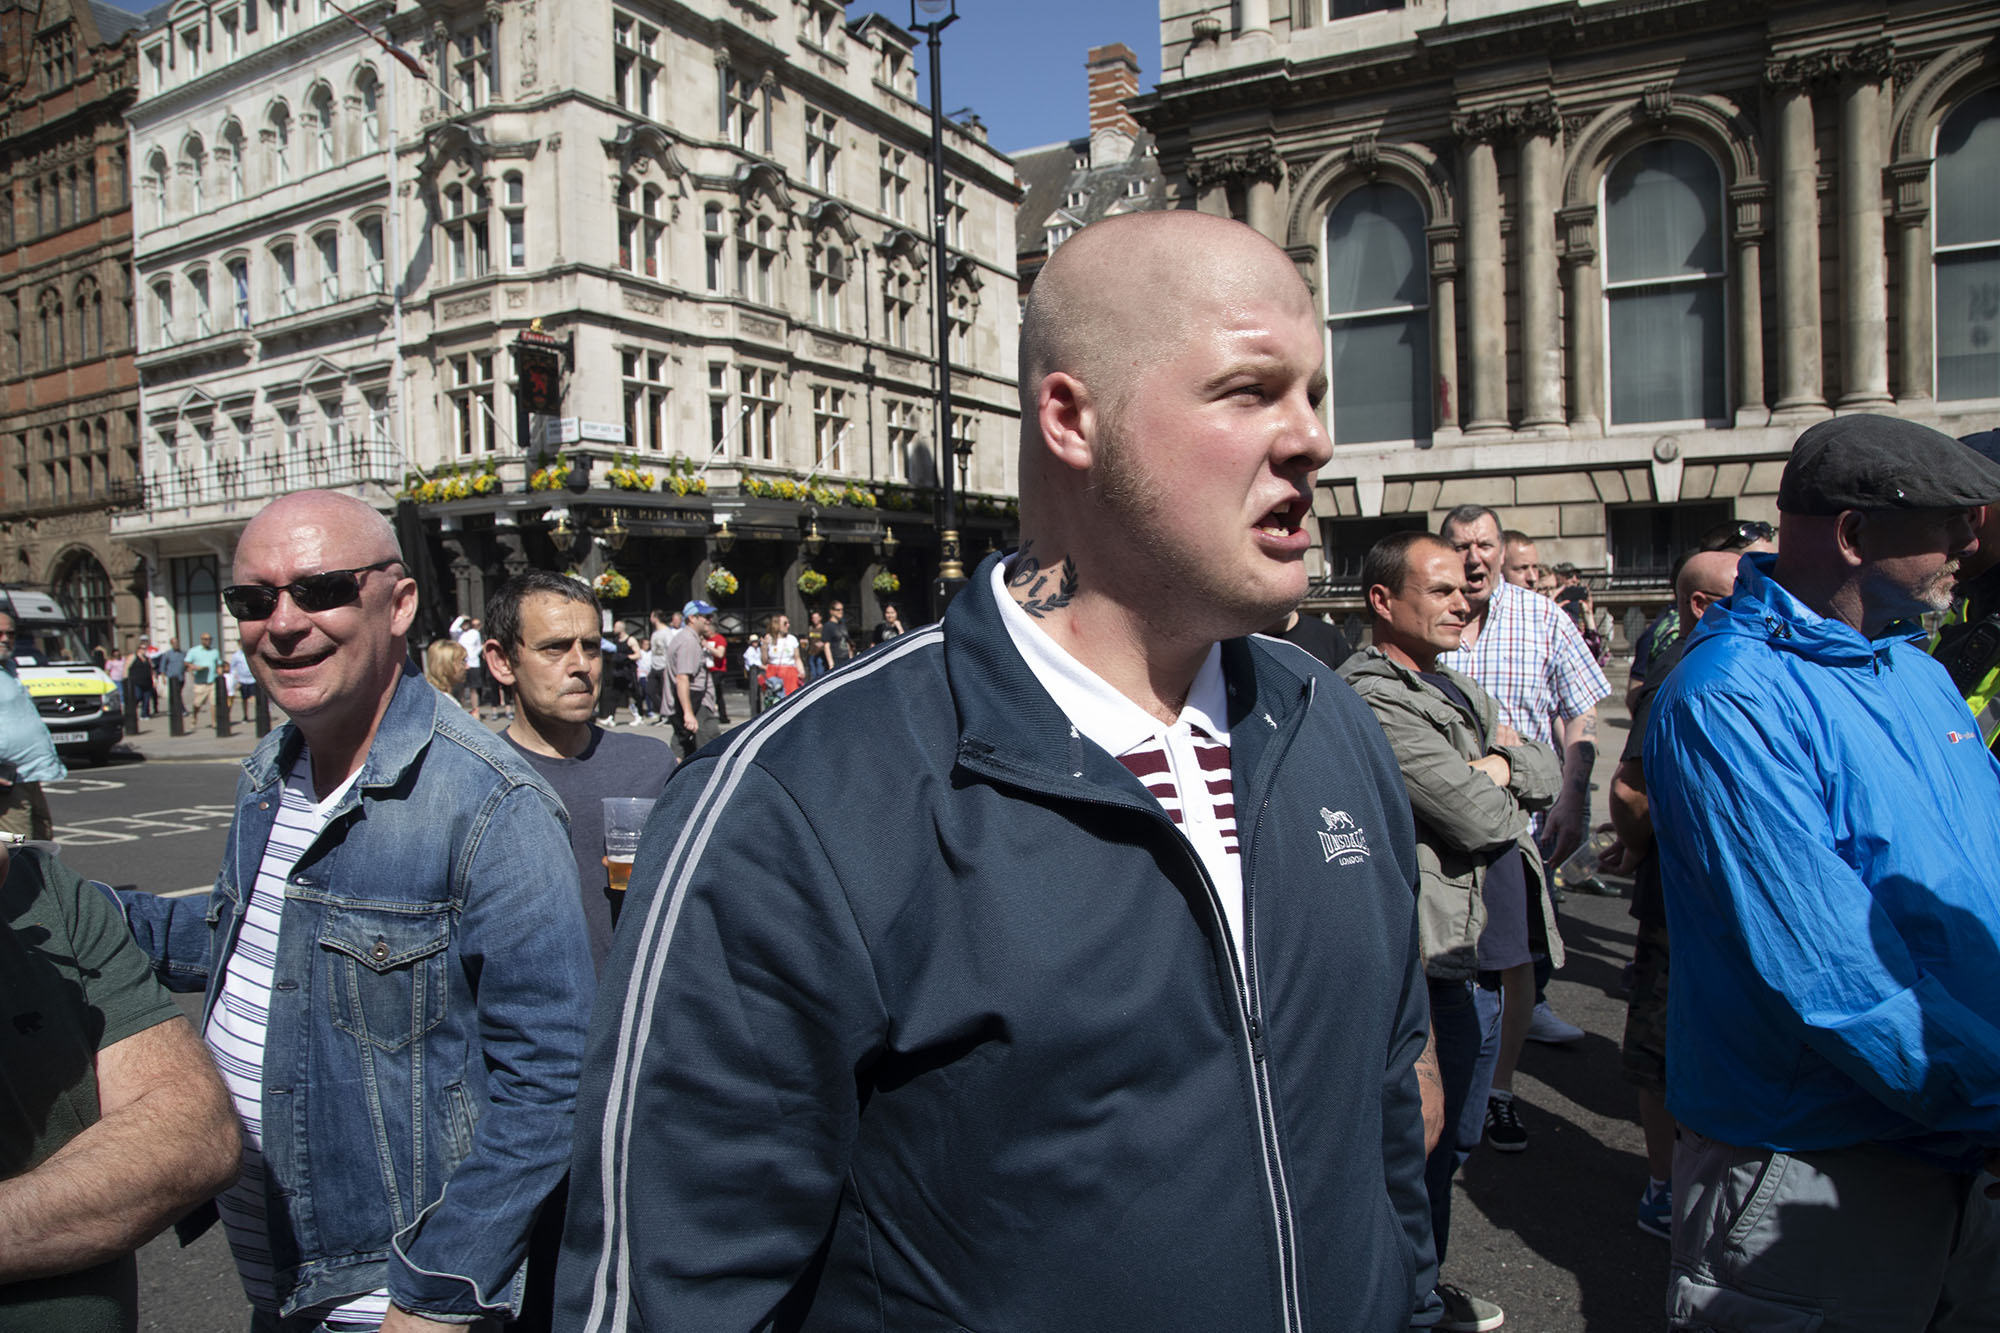 Democratic Football Lads Alliance 'day of freedom' on Whitehall with nationalistic sentiments being screamed at anti fascists.